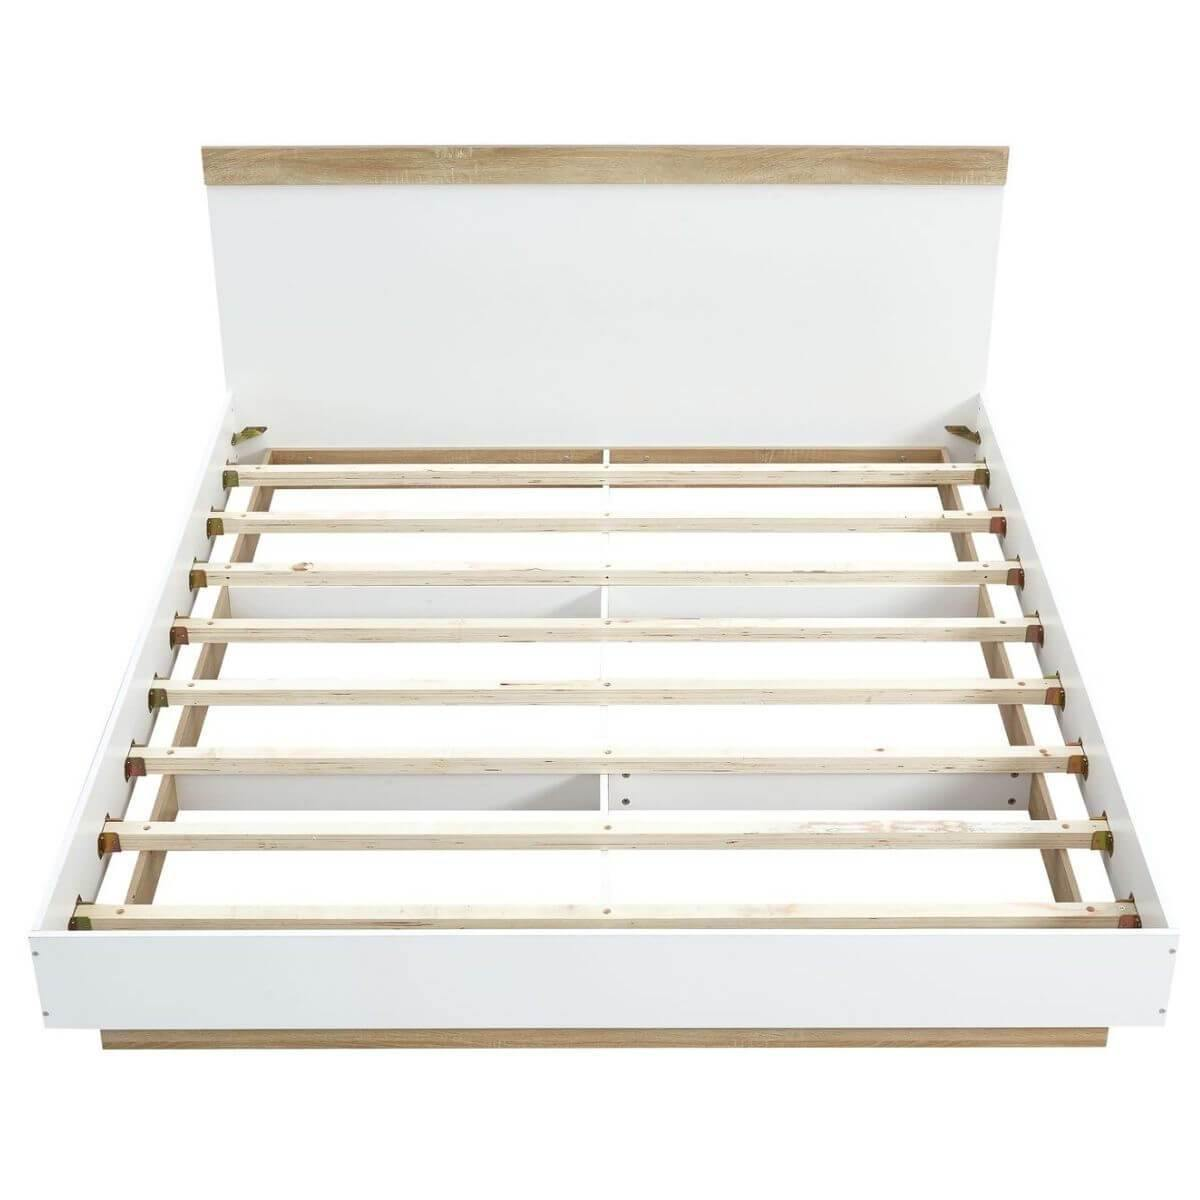 Aiden Industrial Contemporary White Oak Bed Frame King - Evopia